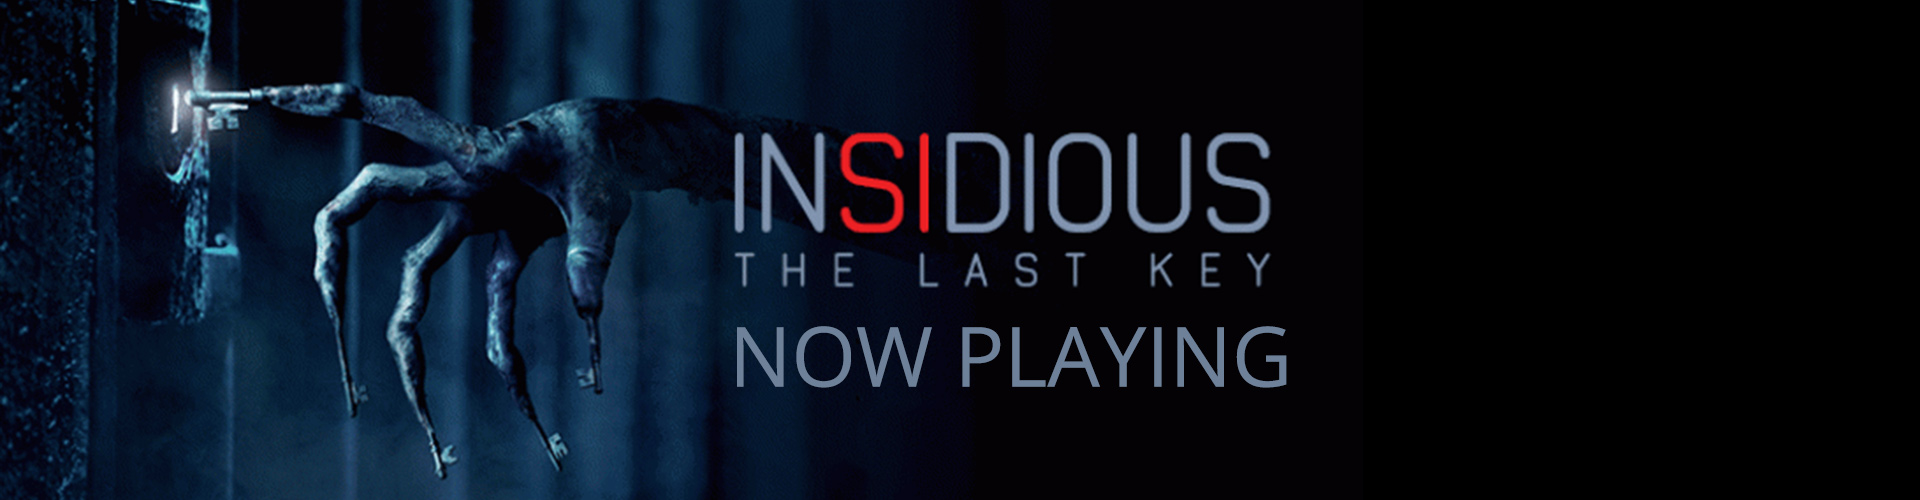 insidious-now-playing